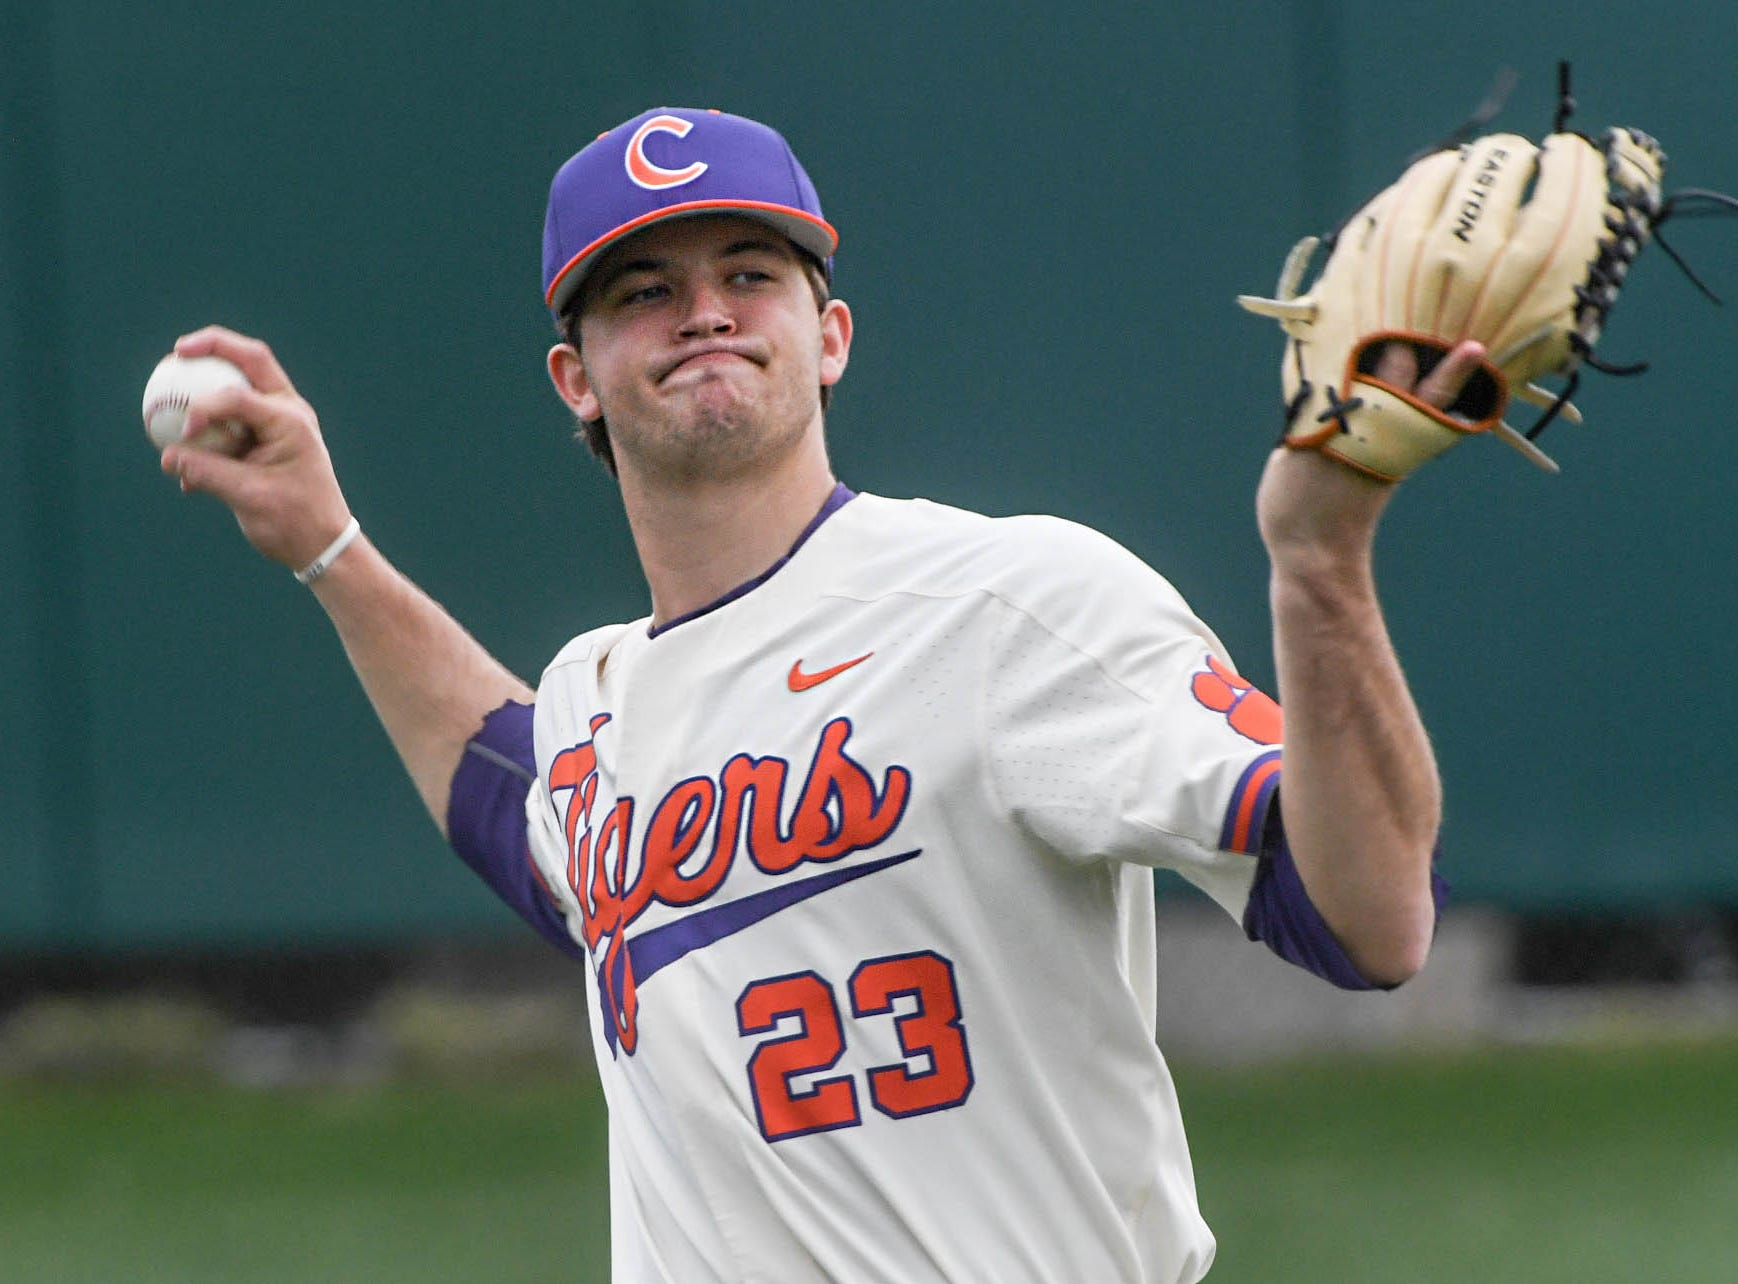 Clemson junior Carson Spiers(23) warms up before the game with Charlotte at Doug Kingsmore Stadium in Clemson Monday, February 18, 2019.